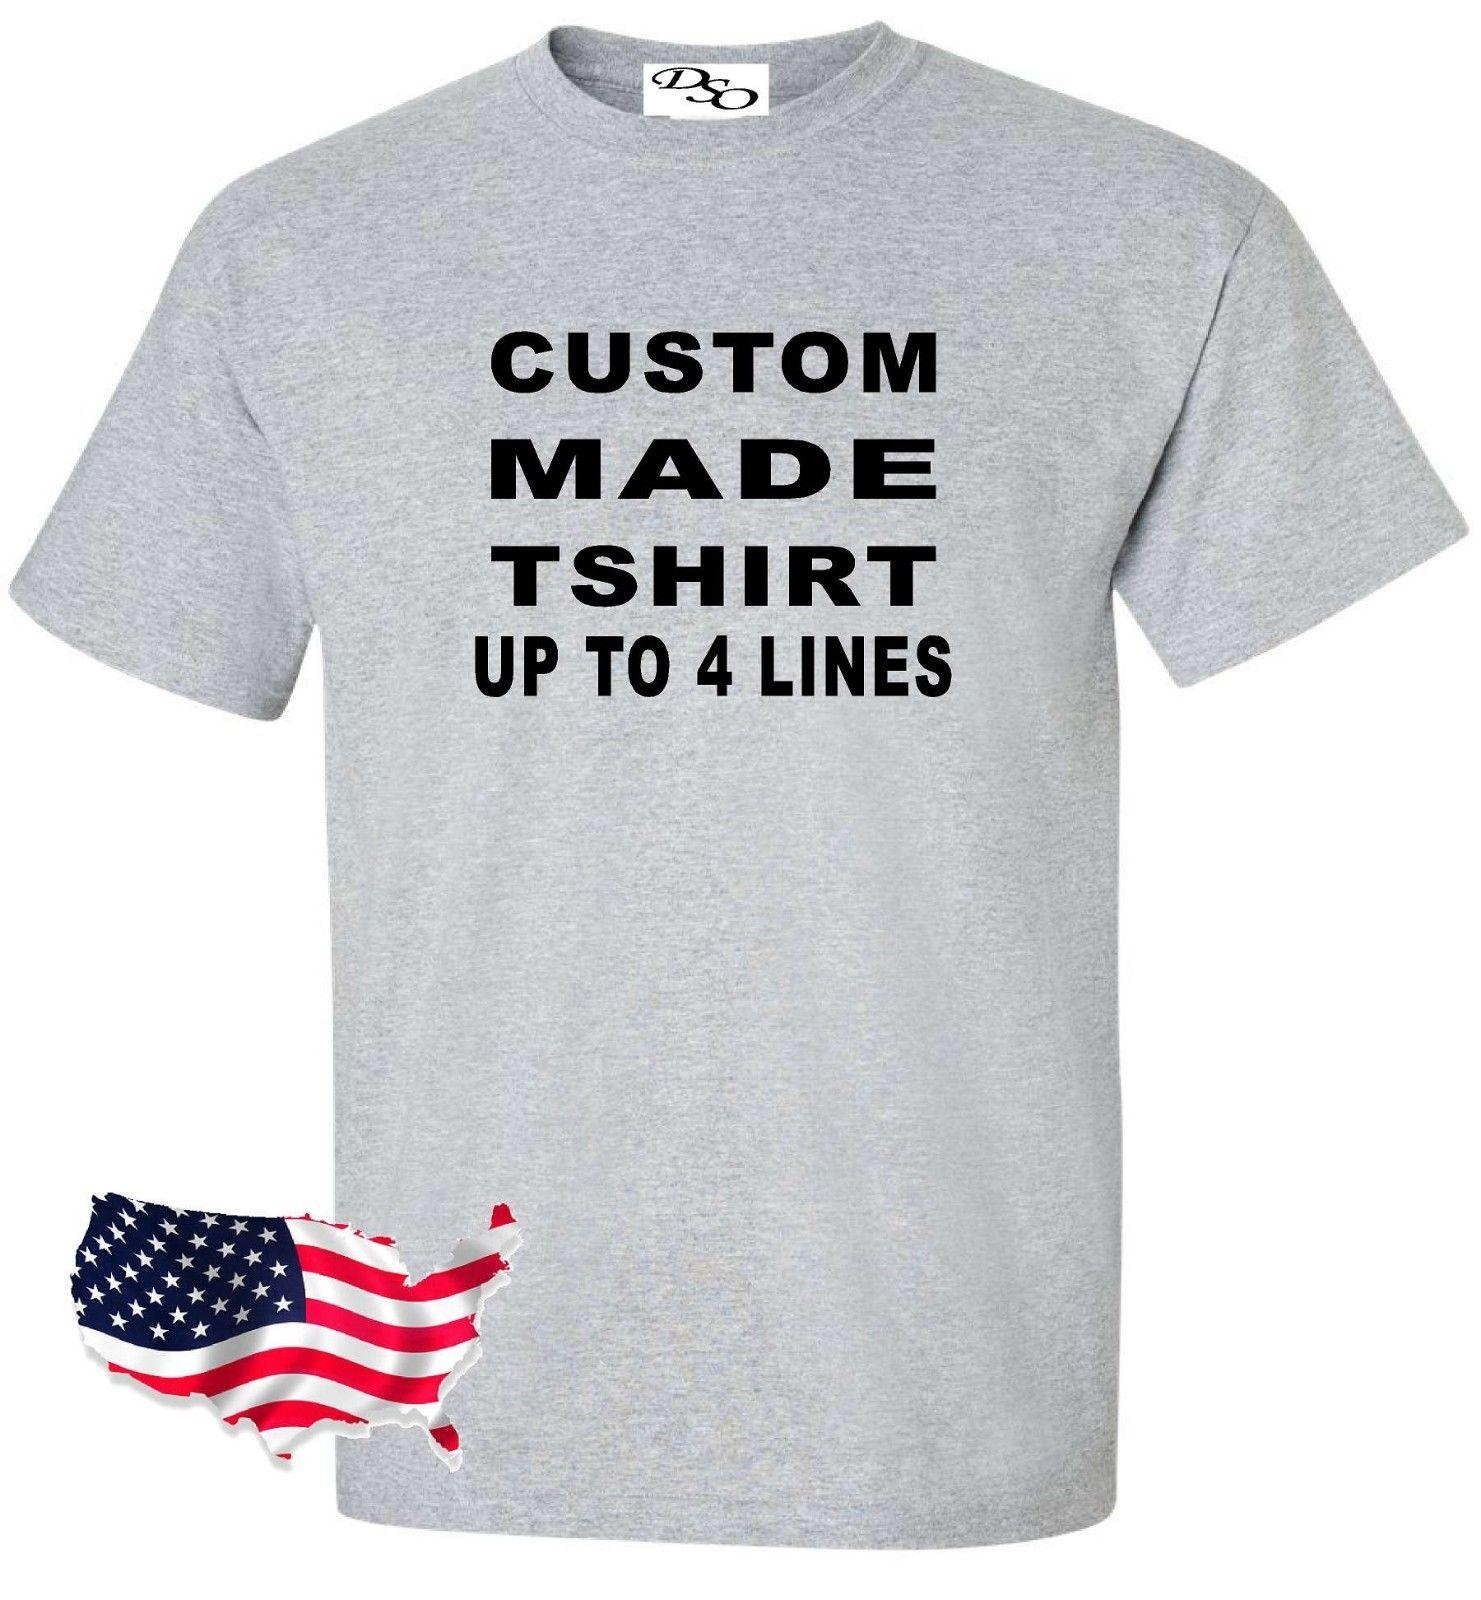 4fb1b59e Custom Made Shirt Make Your Own Personalized 16 Tee Colors SM 6X Funny  Unisex Casual Tshirt Top T Sirts T Shirs From Teeslocker, $10.28| DHgate.Com